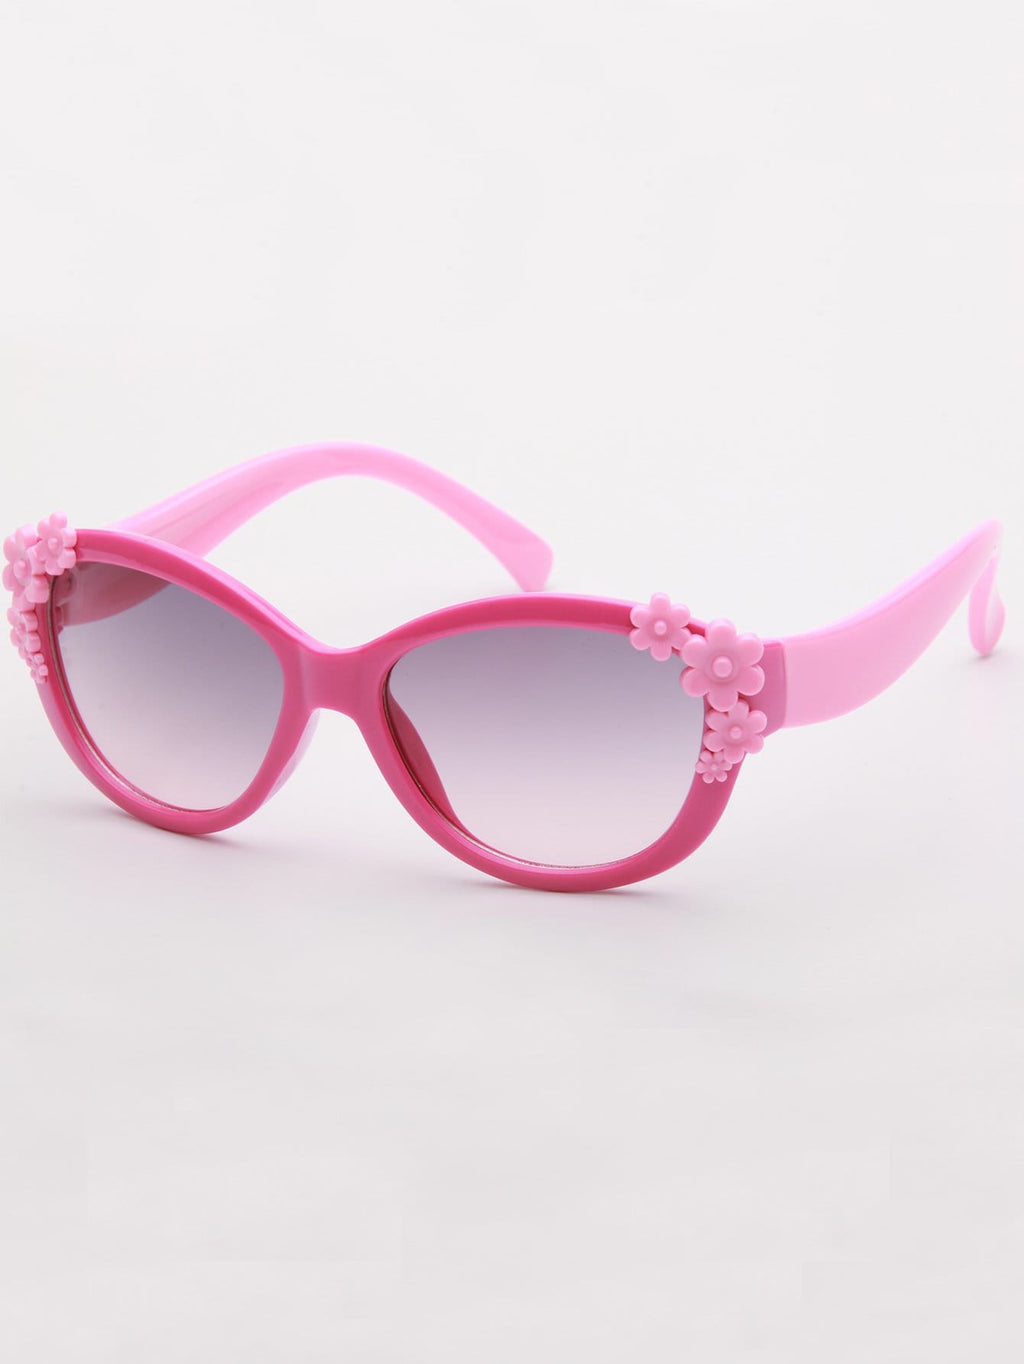 Kids Sunglasses - Neon Pink Girls Flower Decor Two Tone Sunglasses